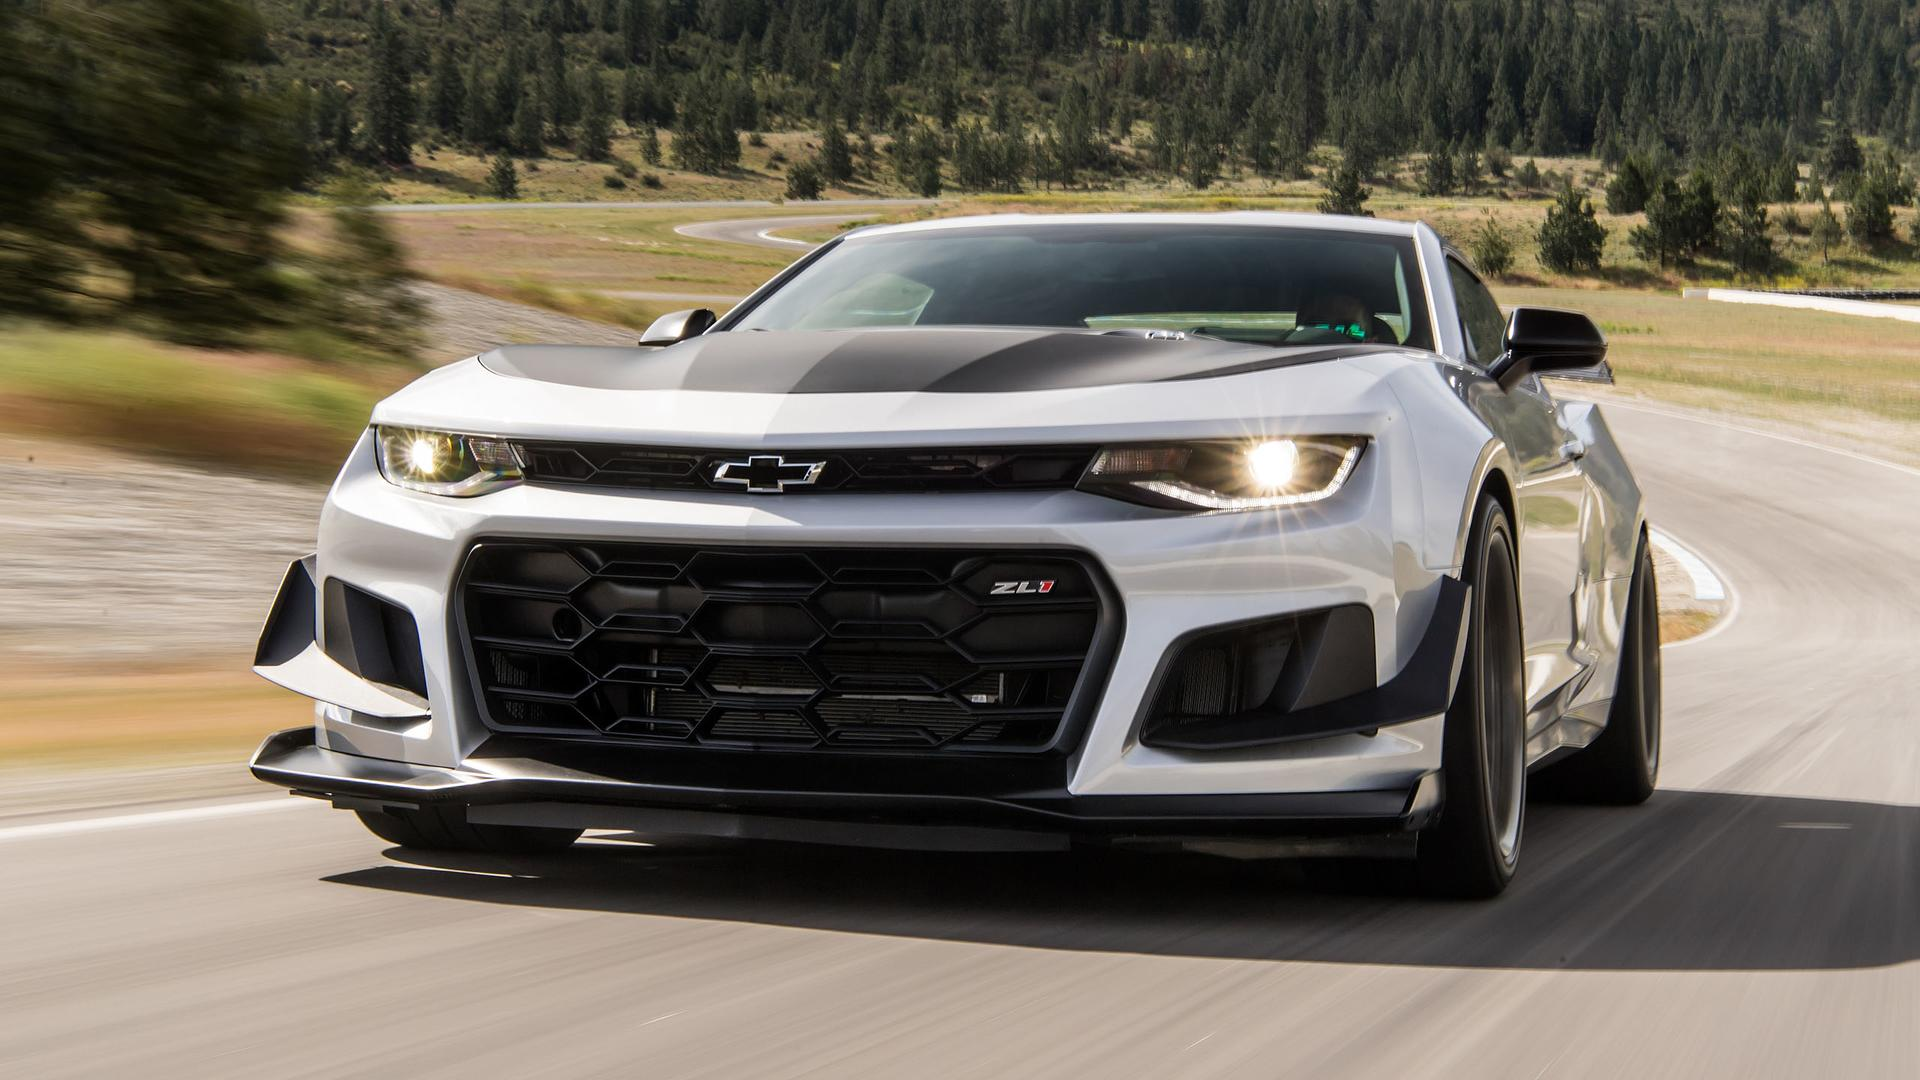 2018 Chevy Camaro Zl1 1le Not Allowed In Europe